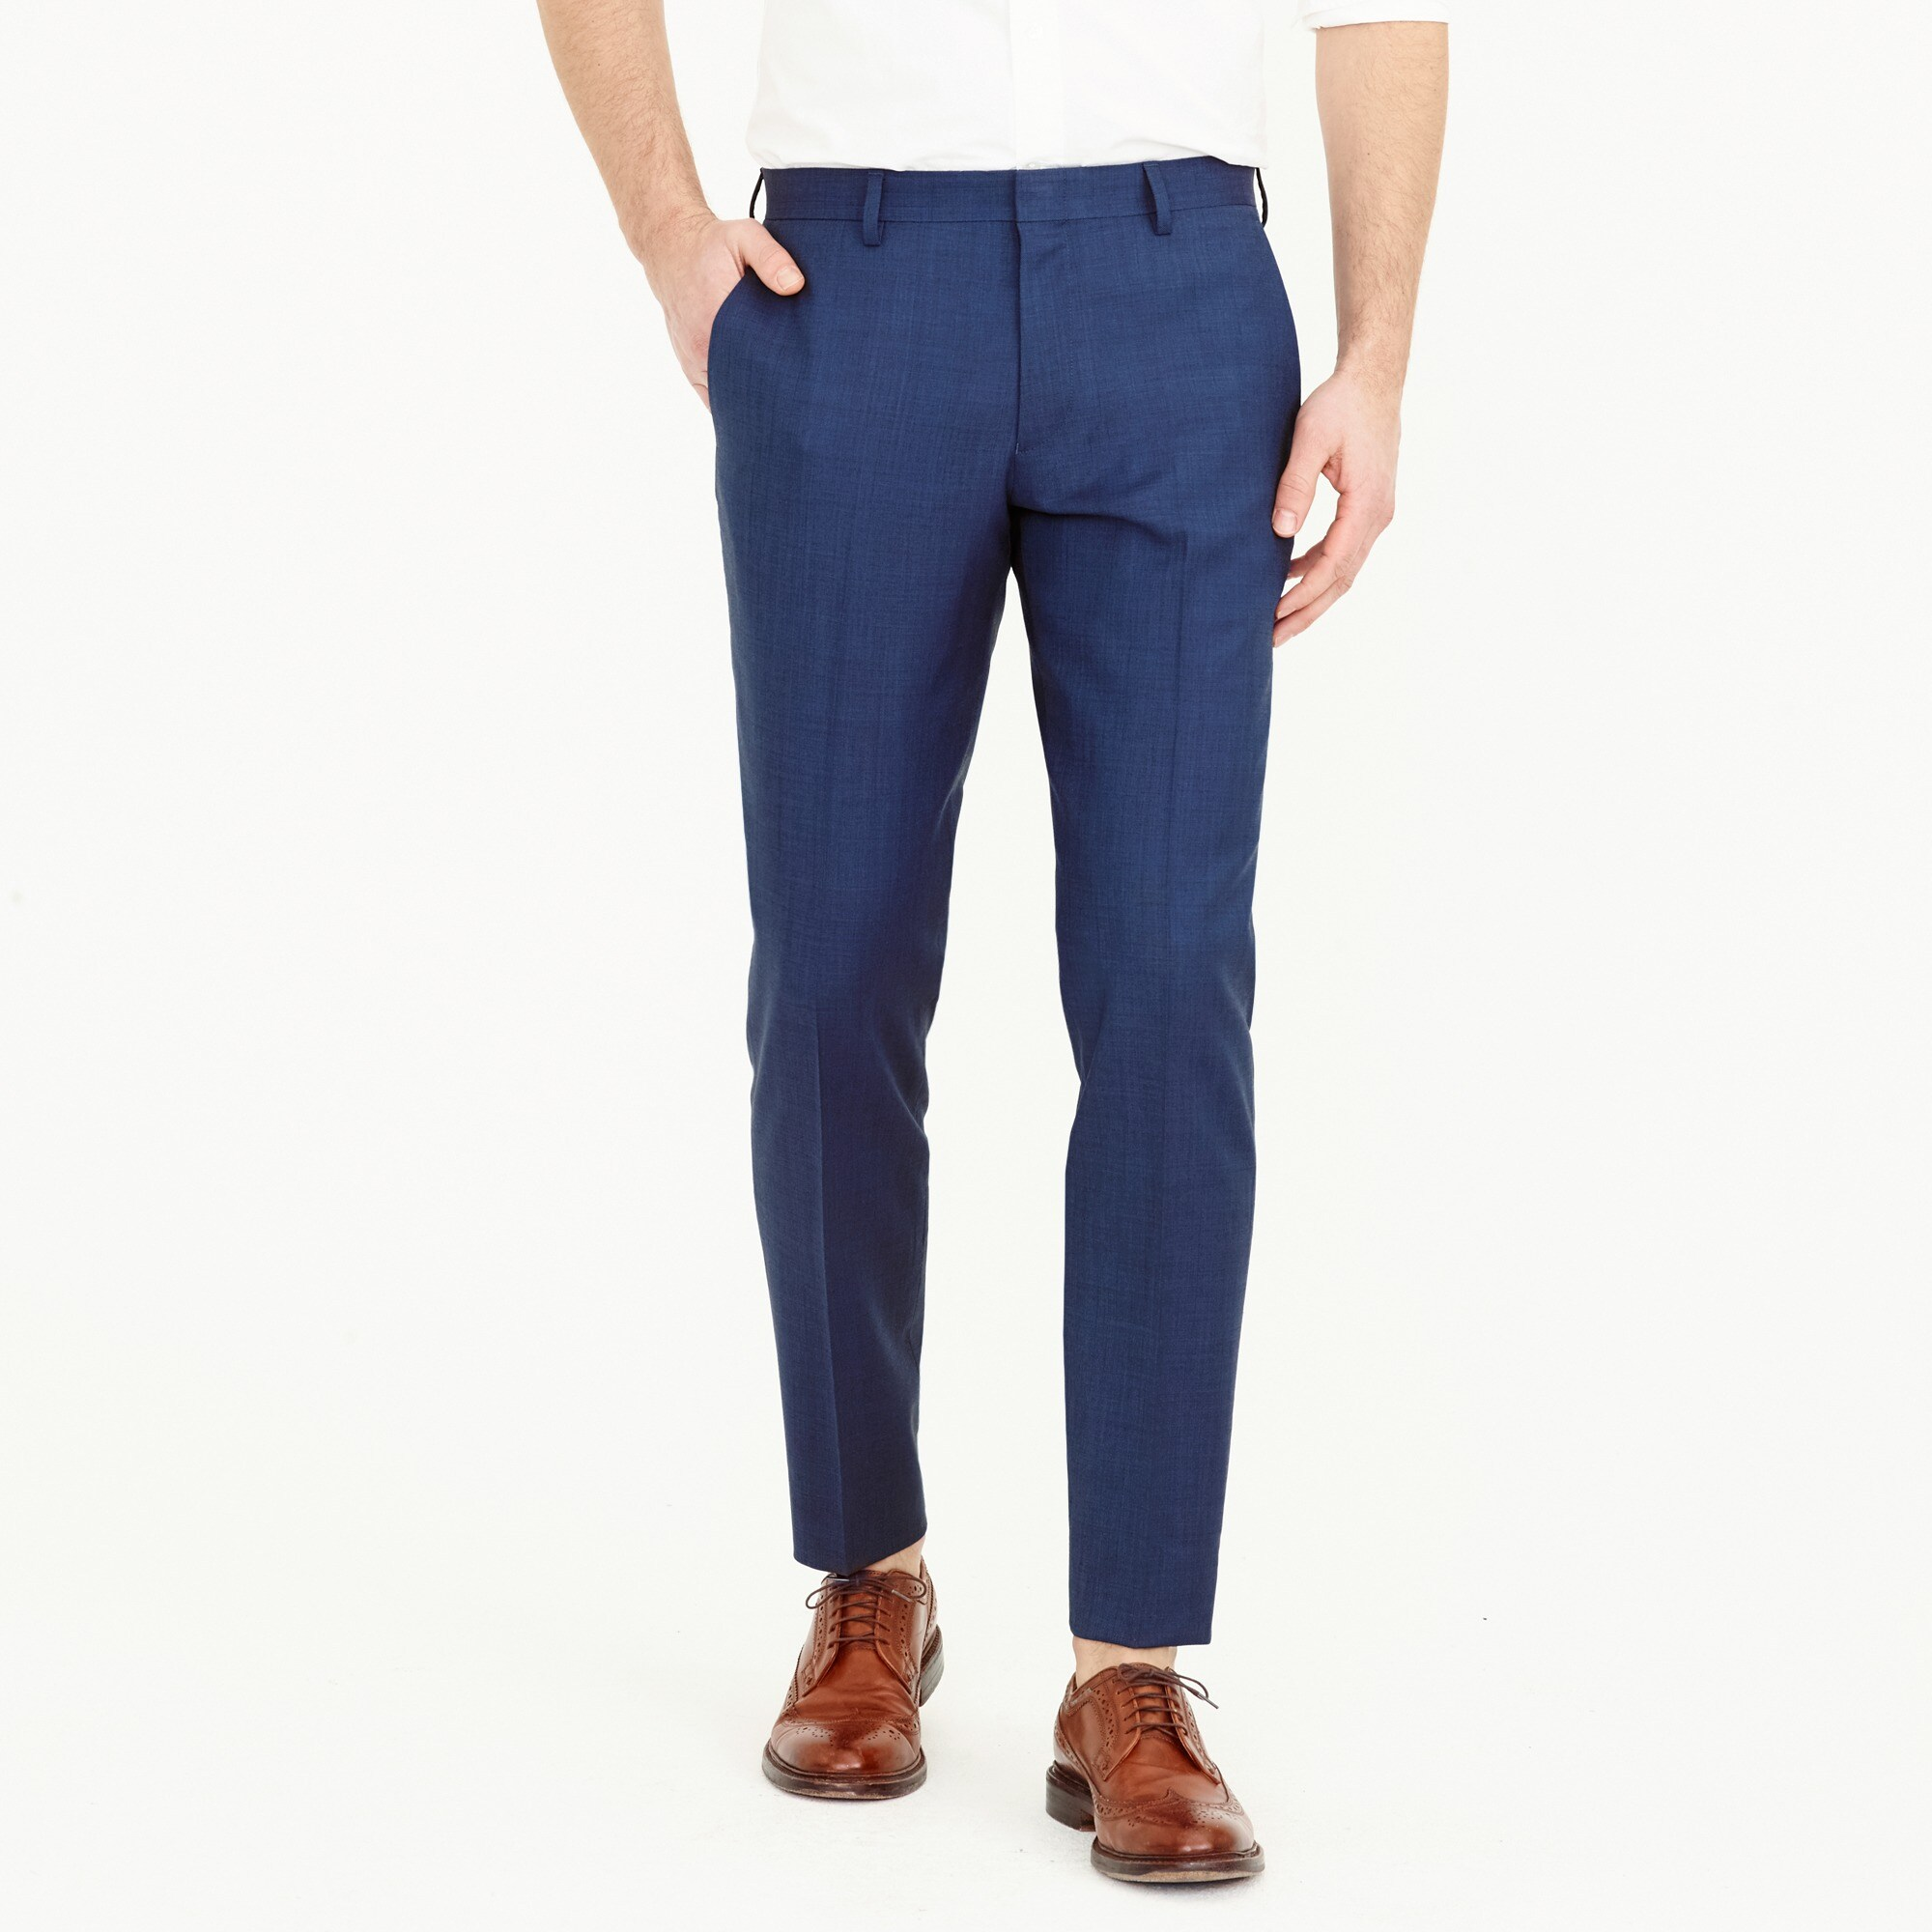 Ludlow Slim-fit suit pant in Italian stretch worsted wool